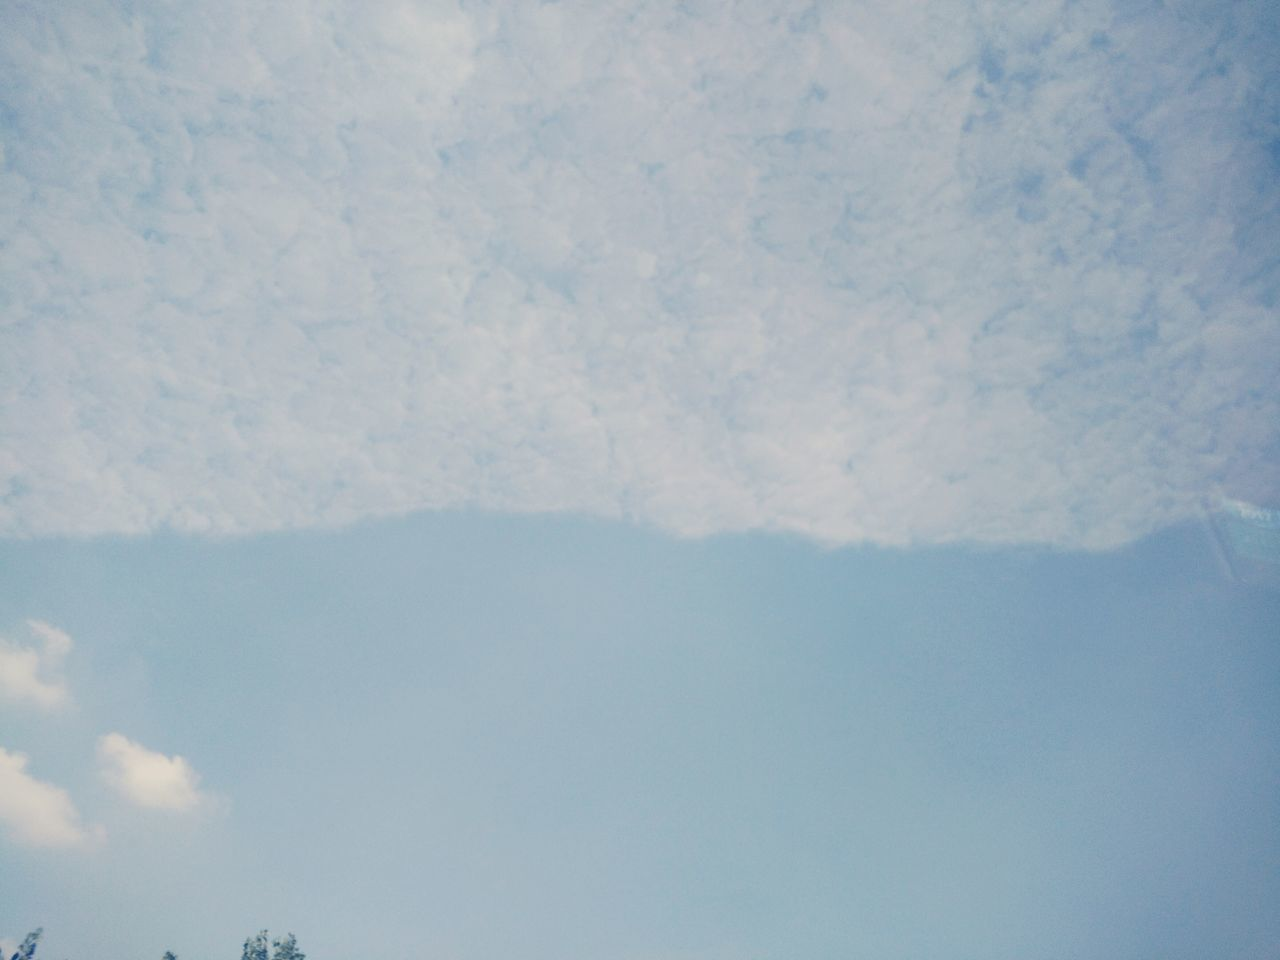 sky, cloud - sky, nature, beauty in nature, day, tranquility, no people, low angle view, outdoors, scenics